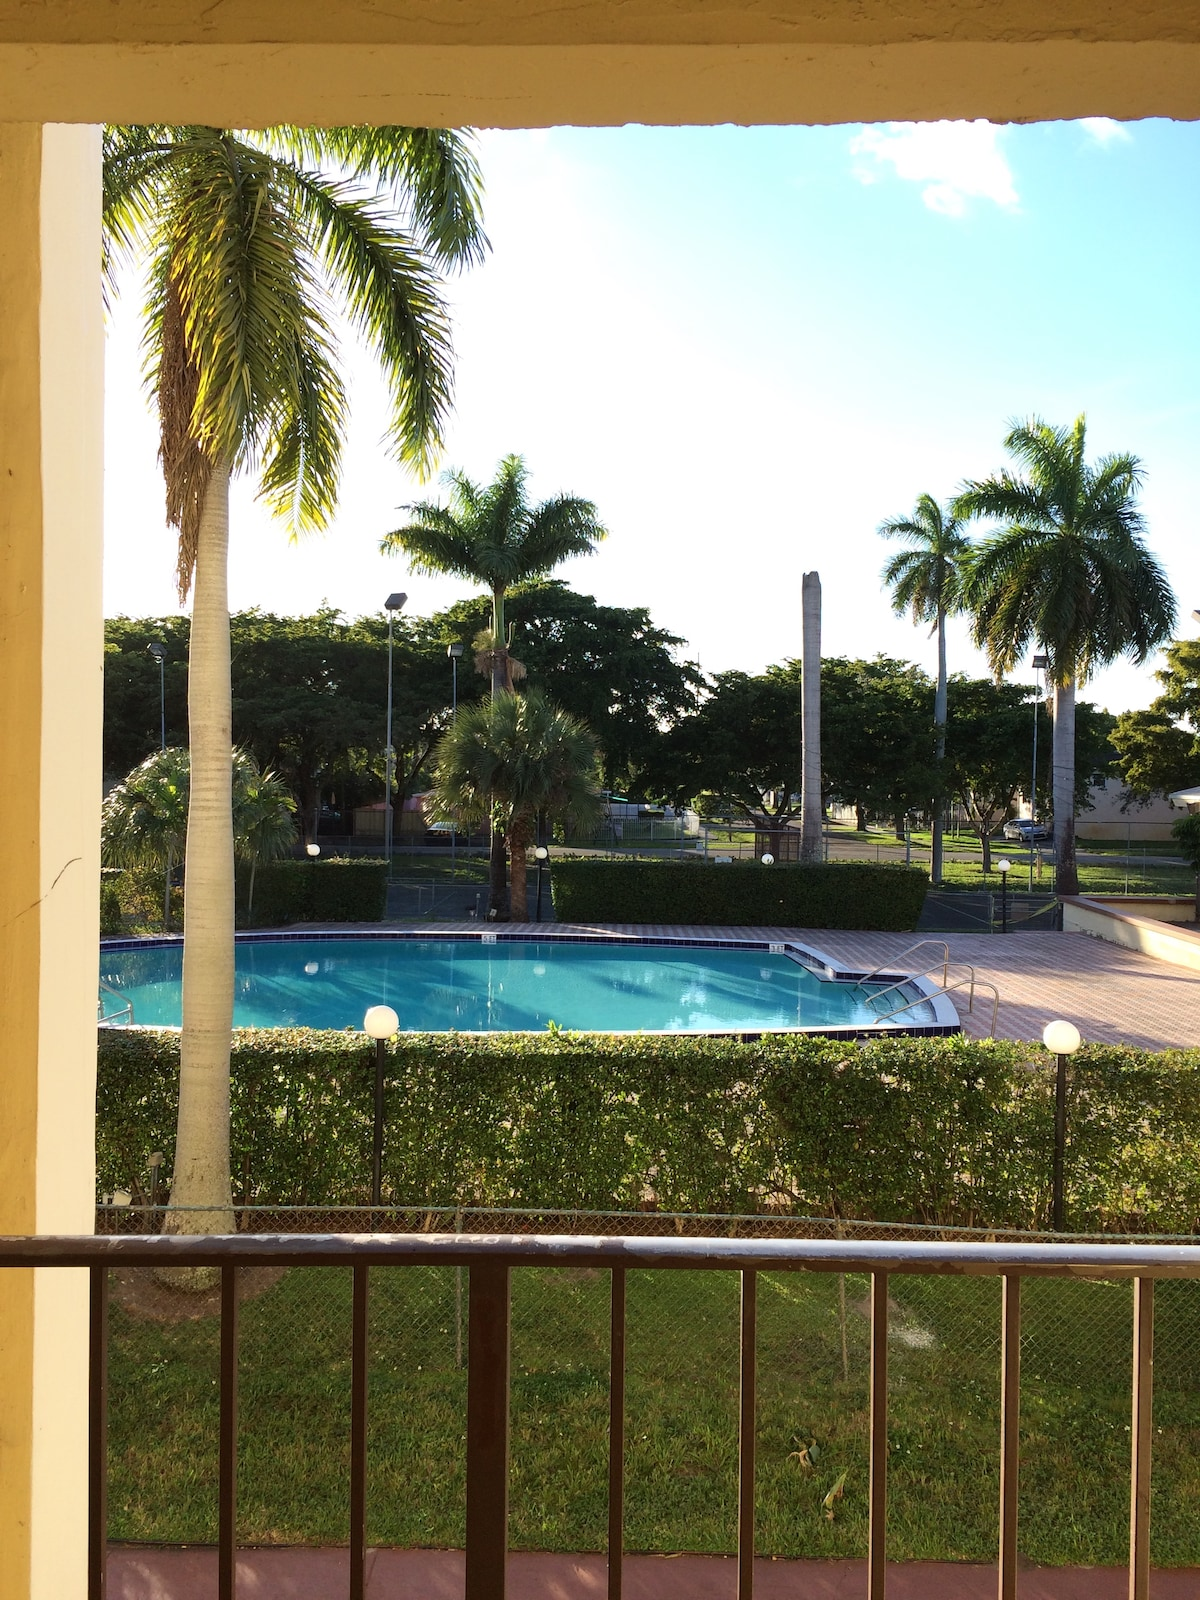 Large Room on Miami Outskirts